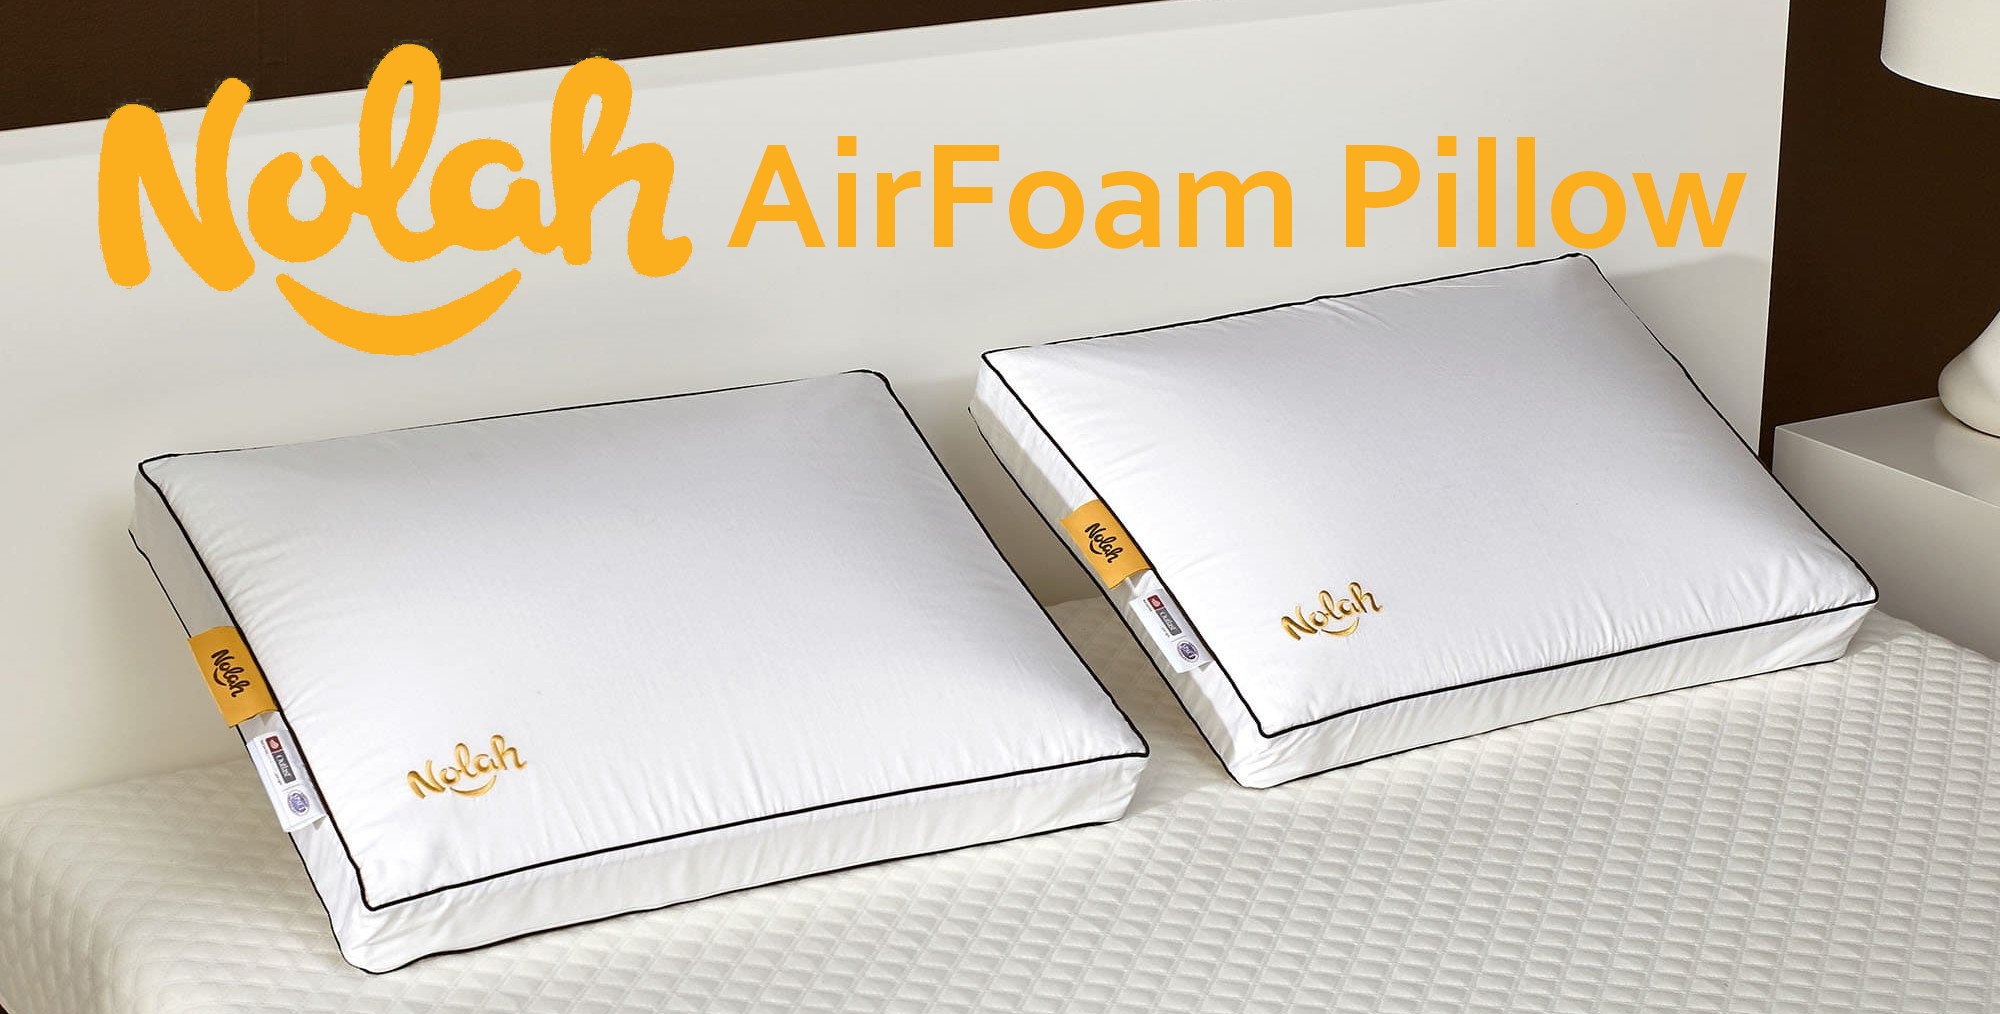 airfoam pillow from nolah review